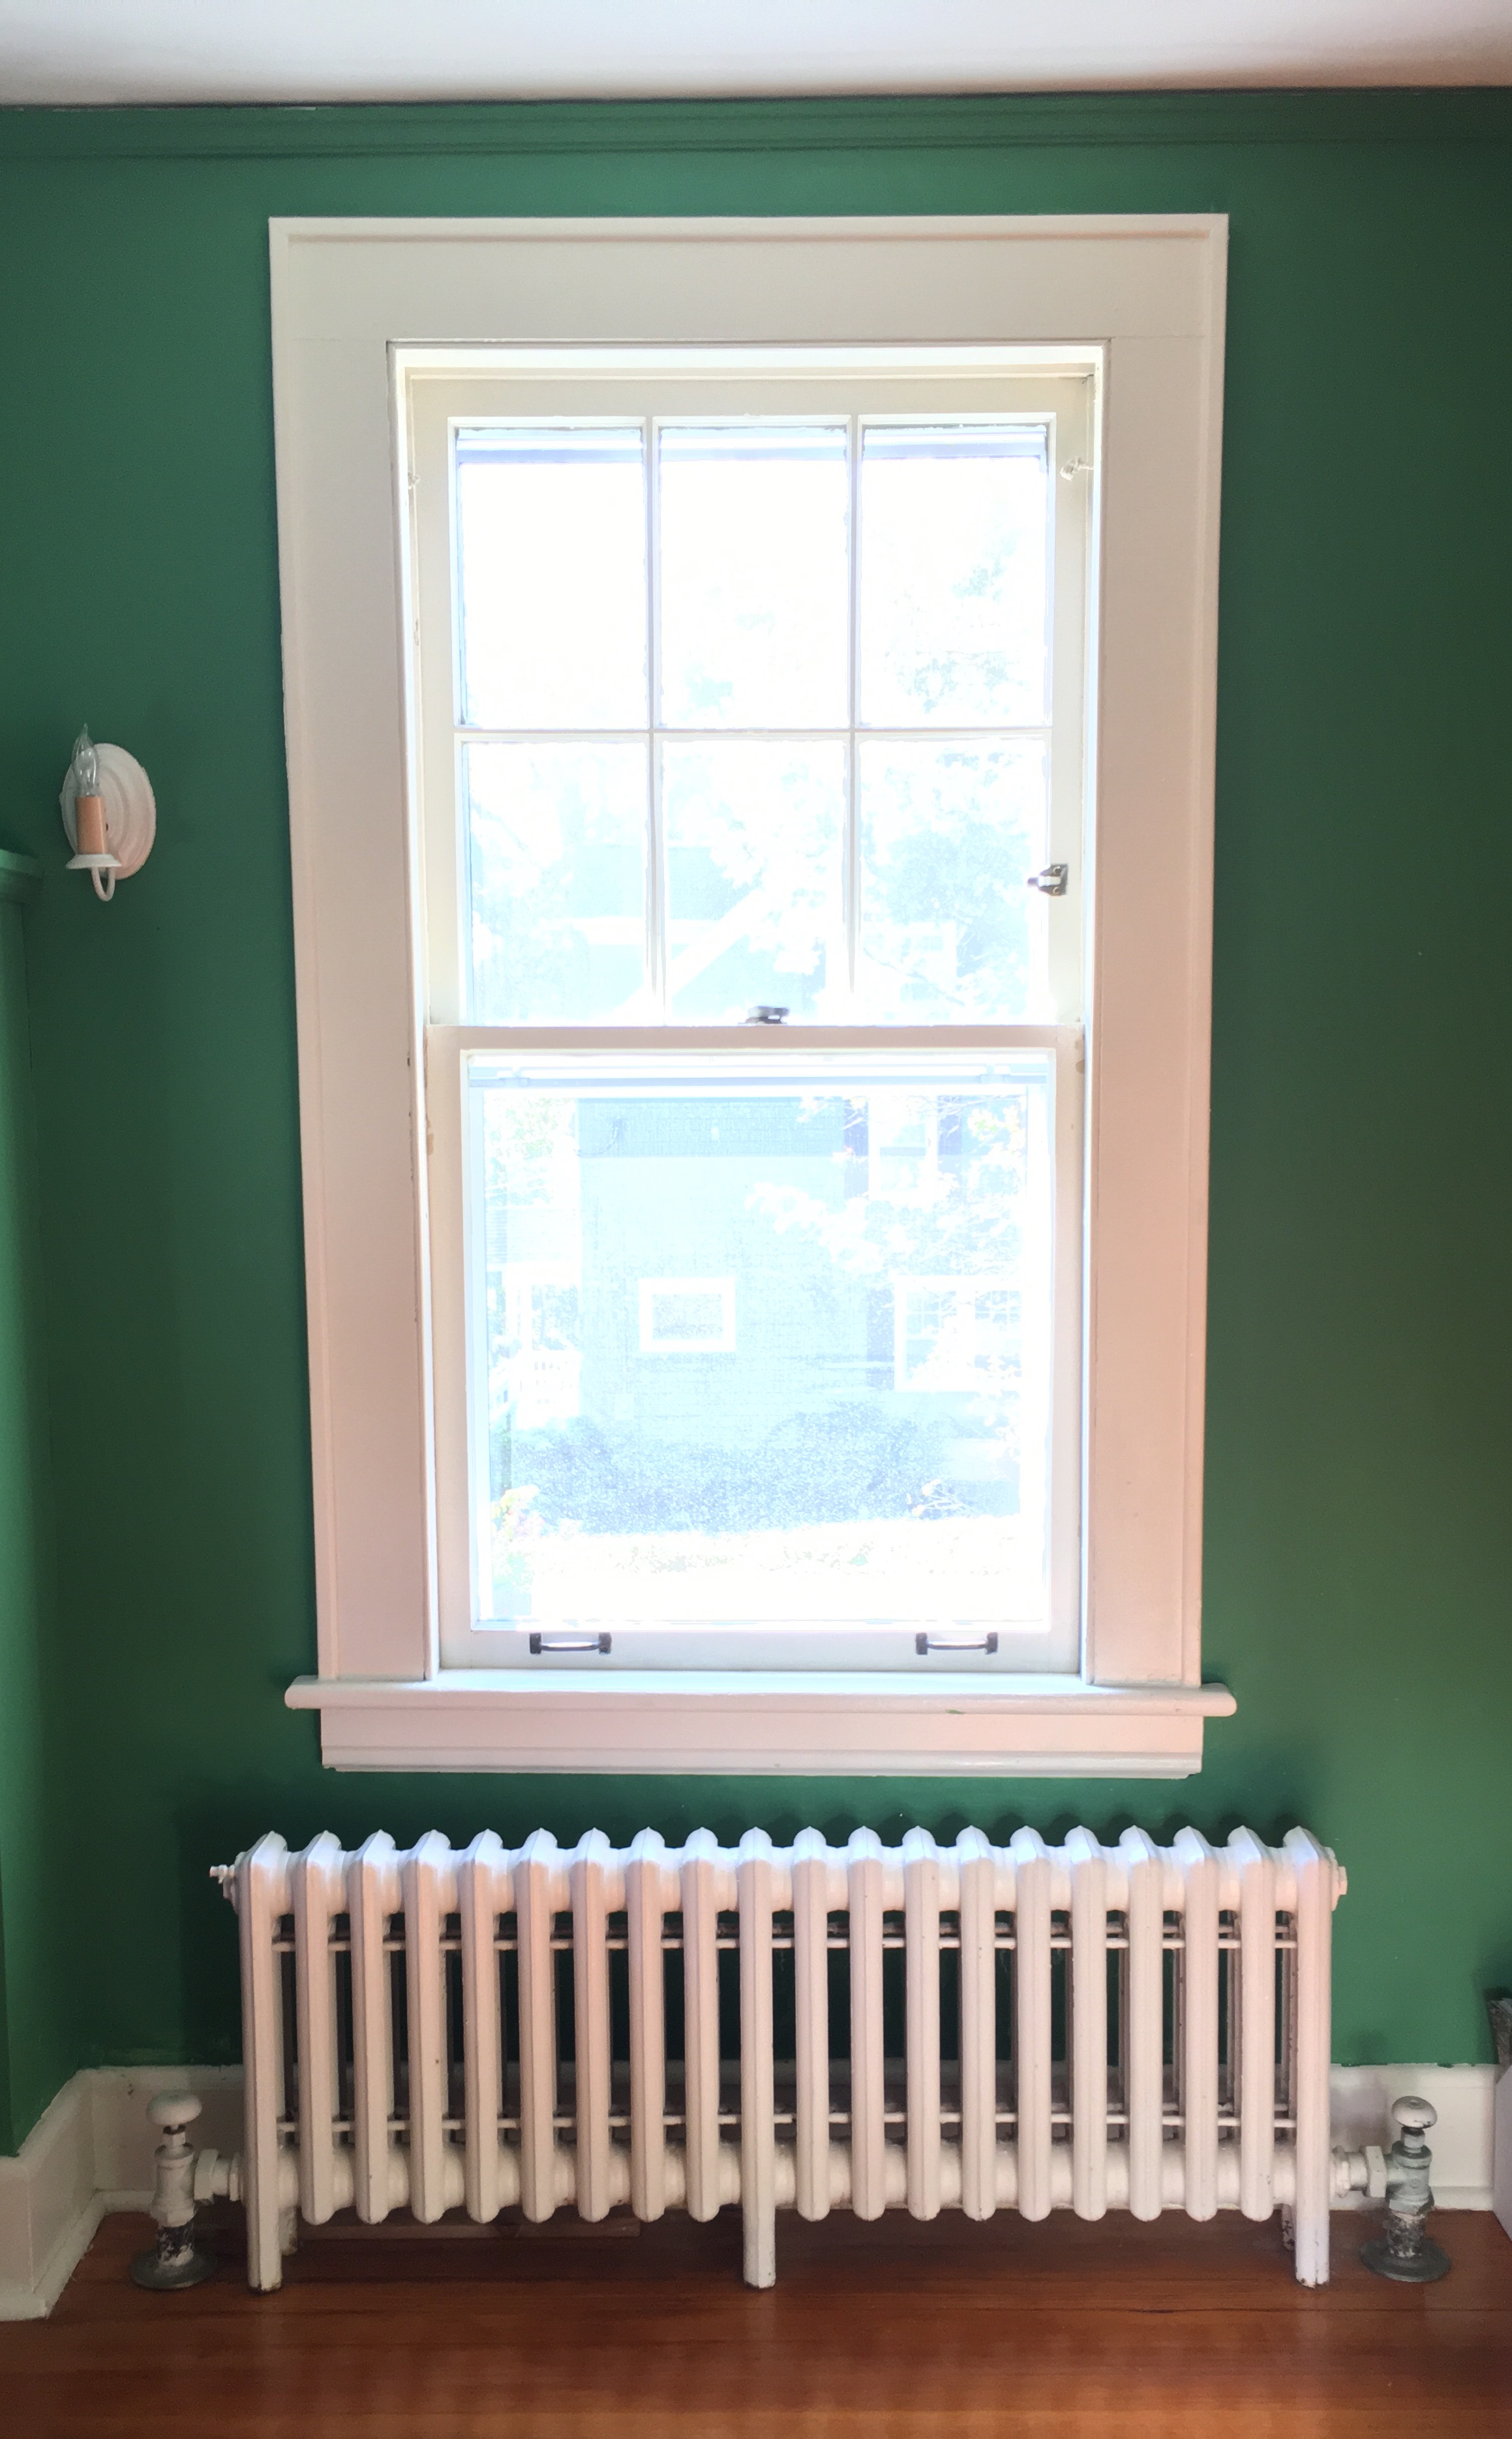 Once the walls were painted the windows almost looked worse against the stark contrast of the green.